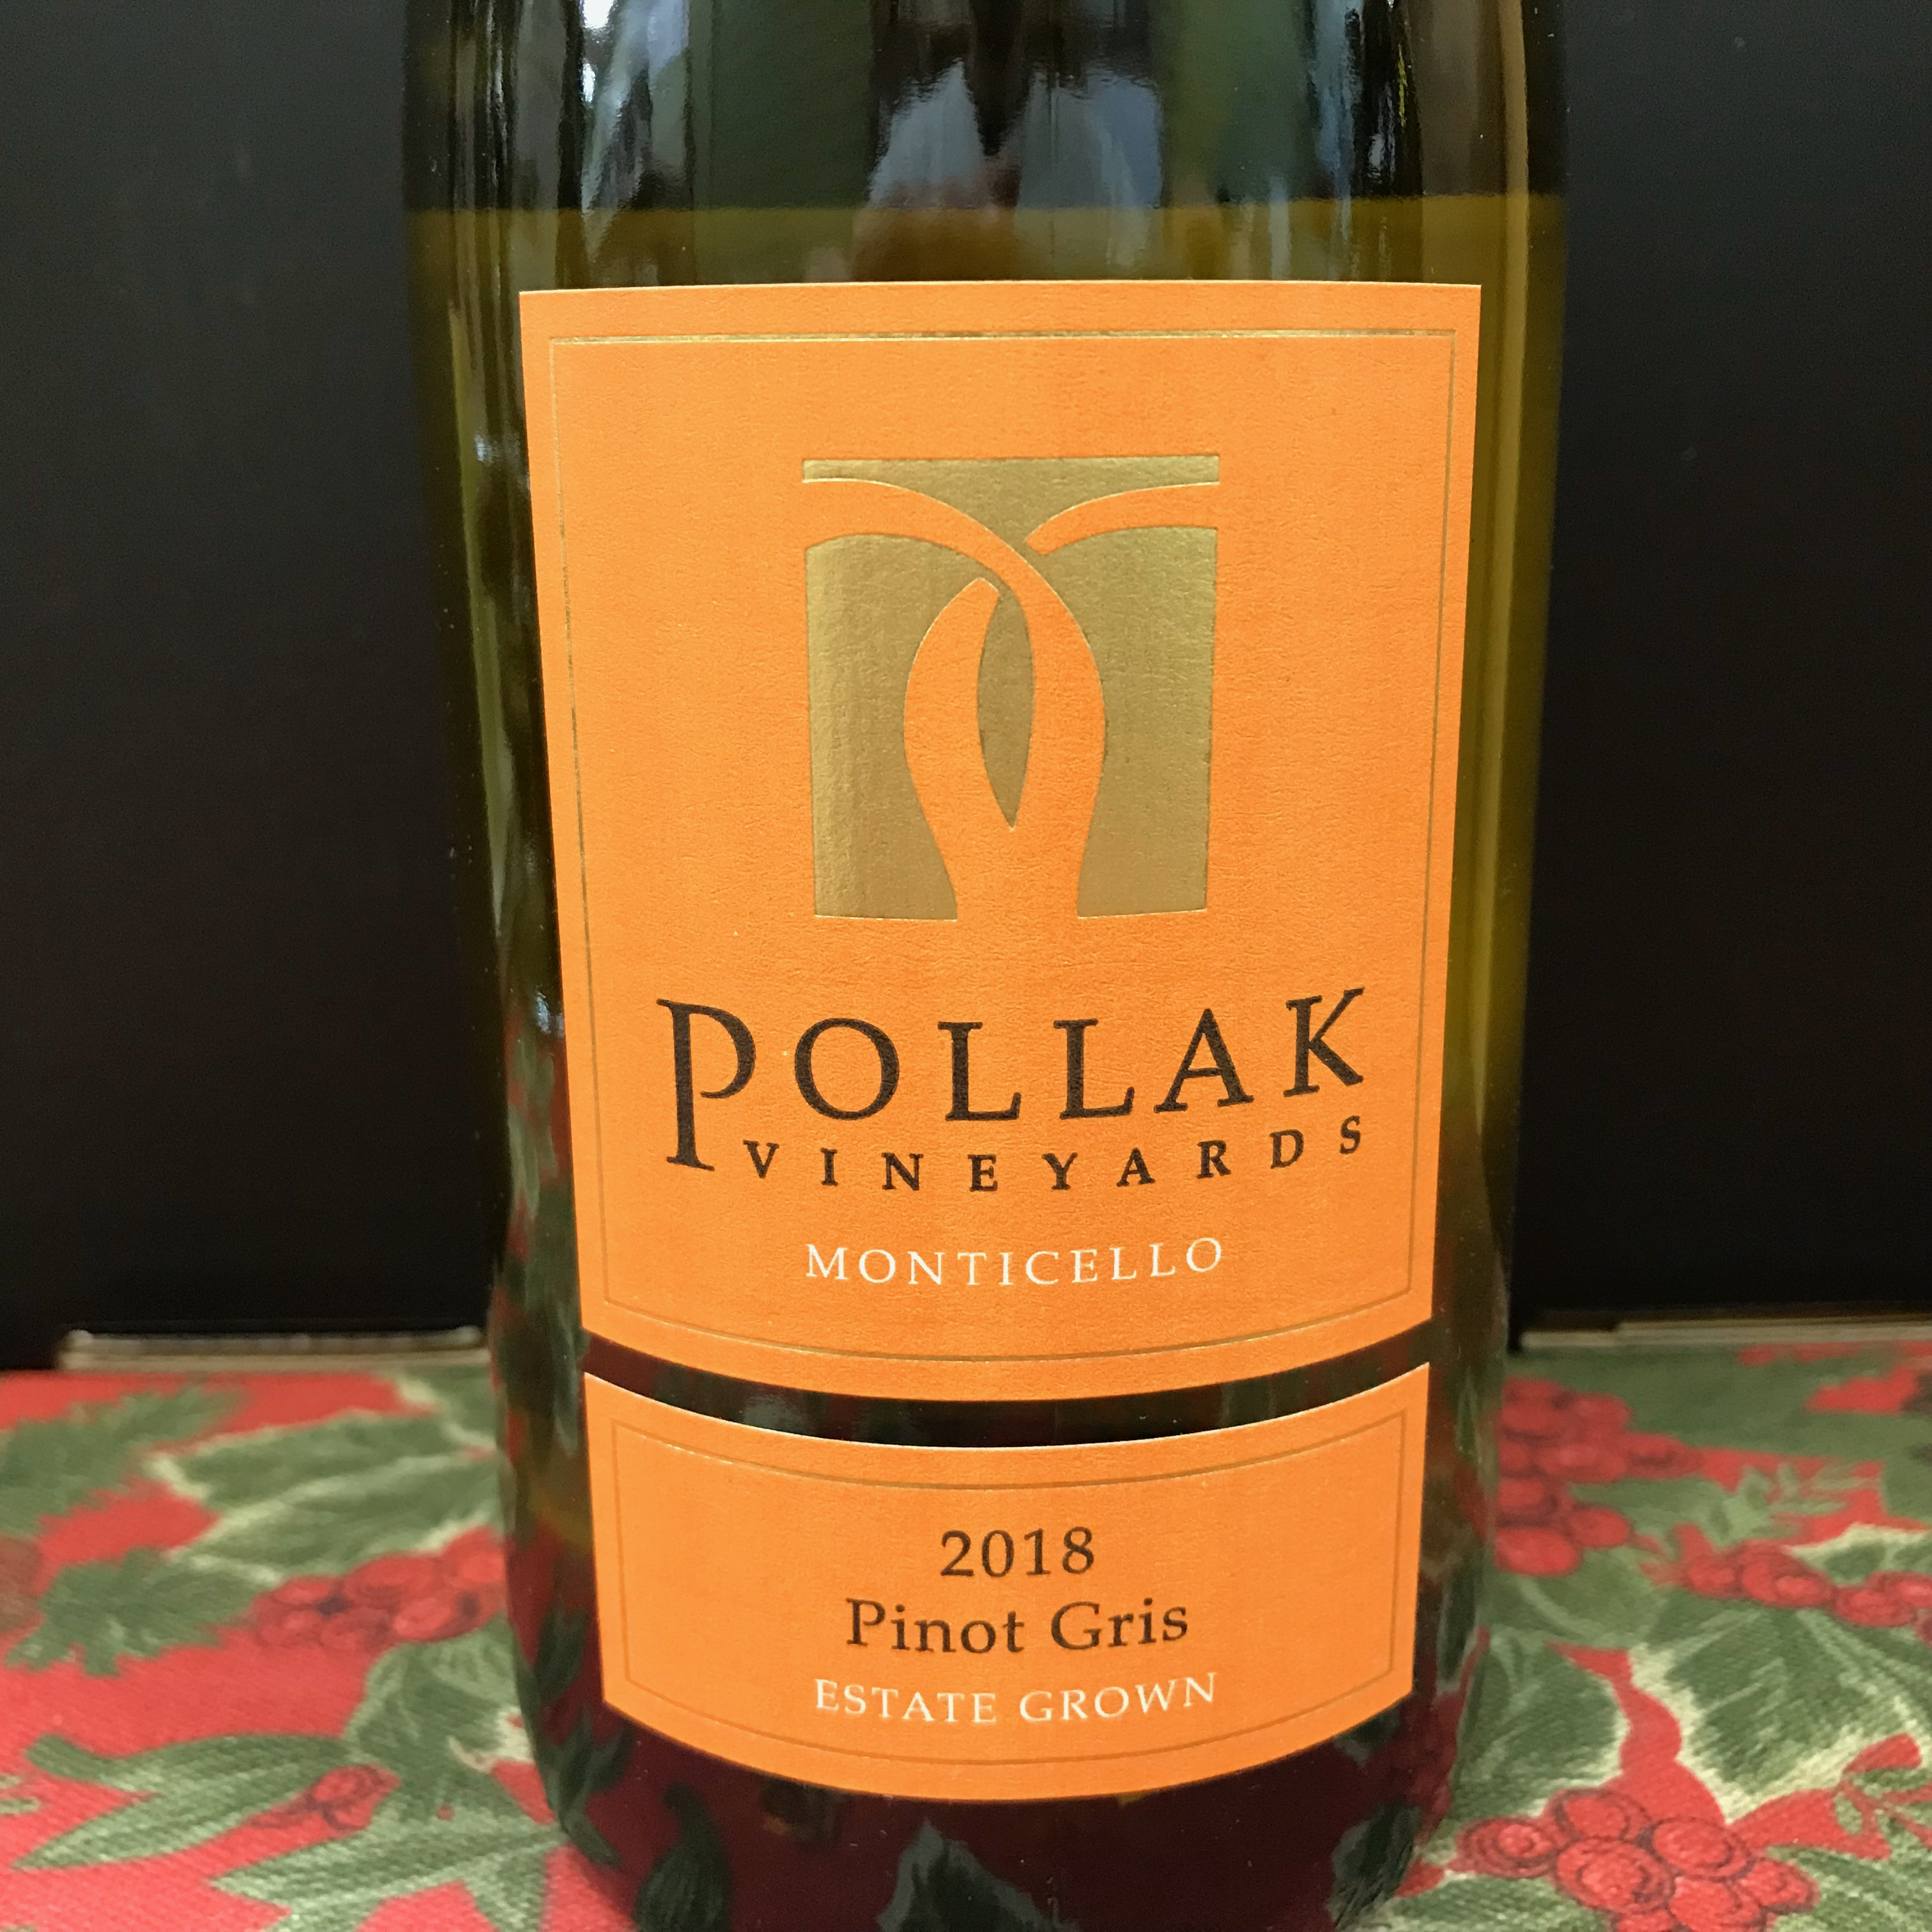 Pollak Vineyards Pinot Gris Monticello Estate 2018